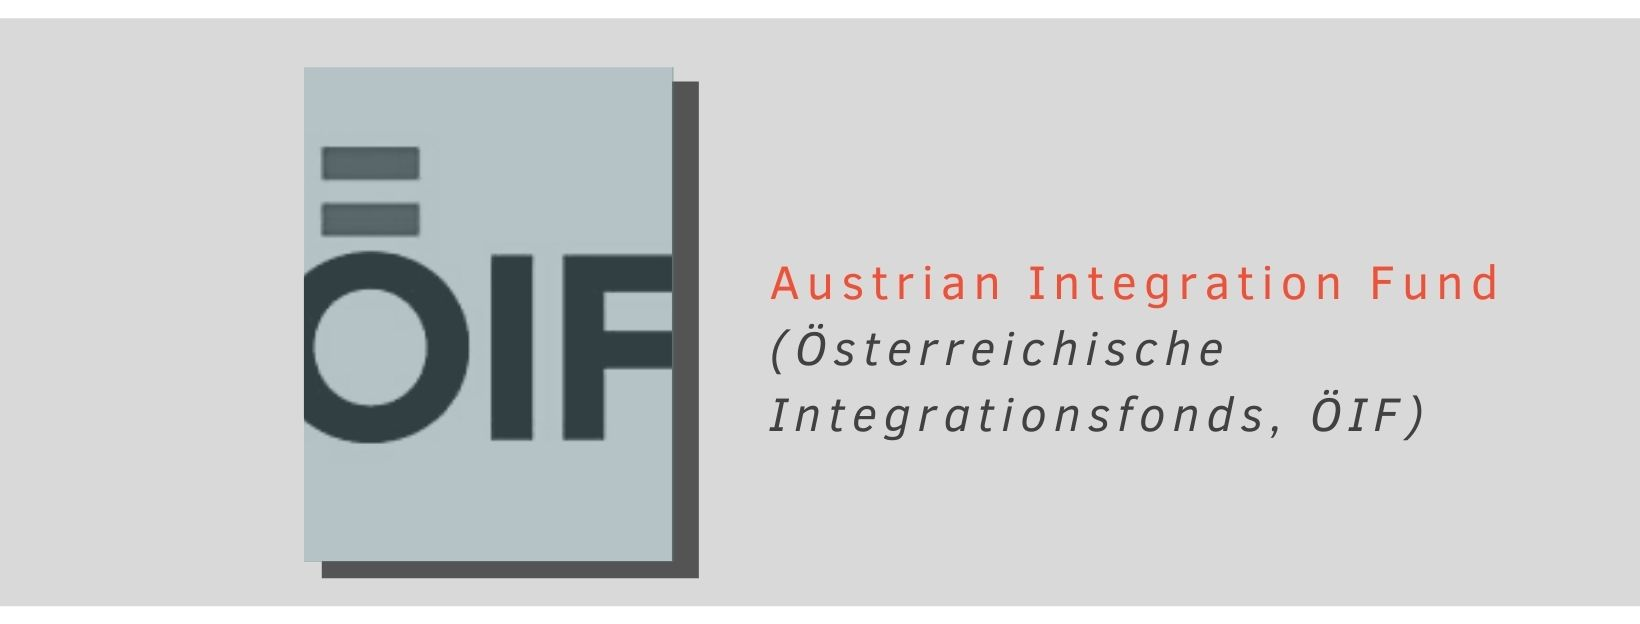 The Austrian Integration Fund (ÖIF) is a fund of the Republic of Austria in charge of integration affairs (social integration of minorities) at both the federal and state levels.